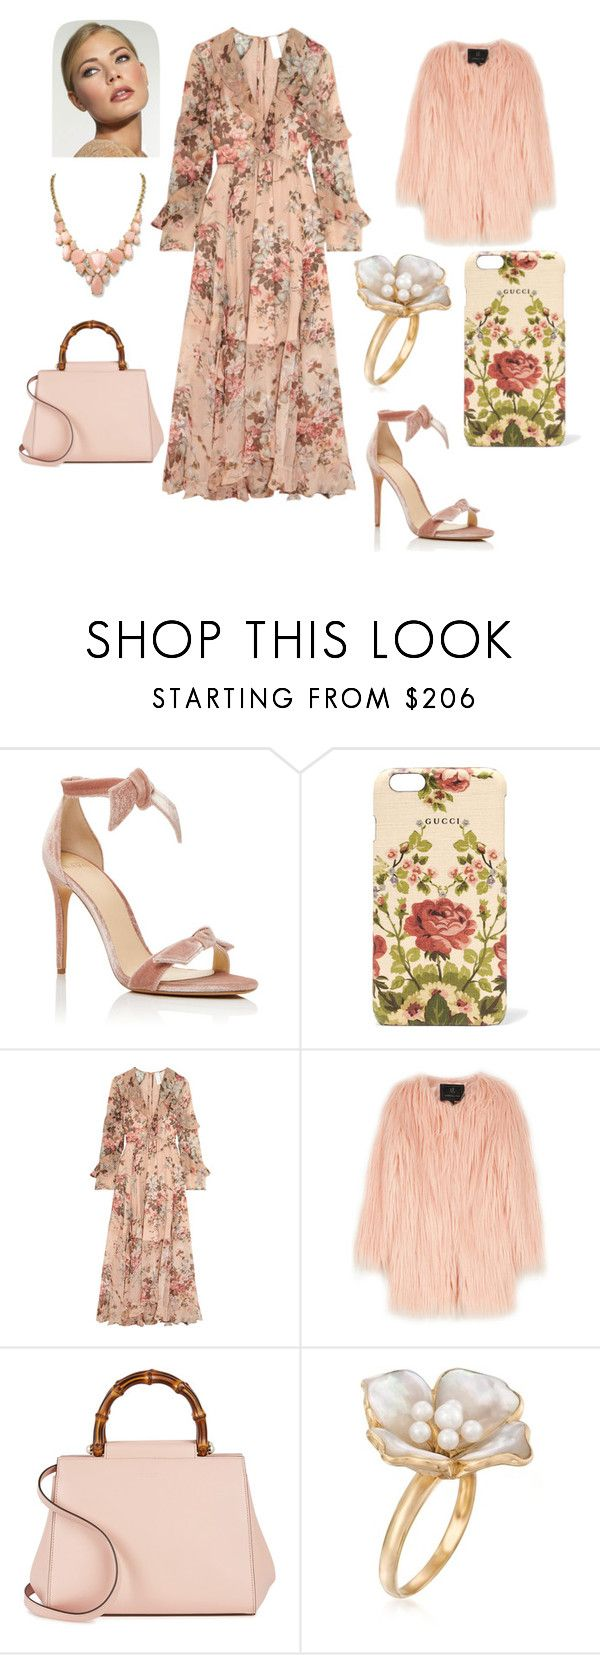 """springtime in nudes and pinks"" by when-wear-what ❤ liked on Polyvore featuring Alexandre Birman, Gucci, Zimmermann, Unreal Fur and Ross-Simons"